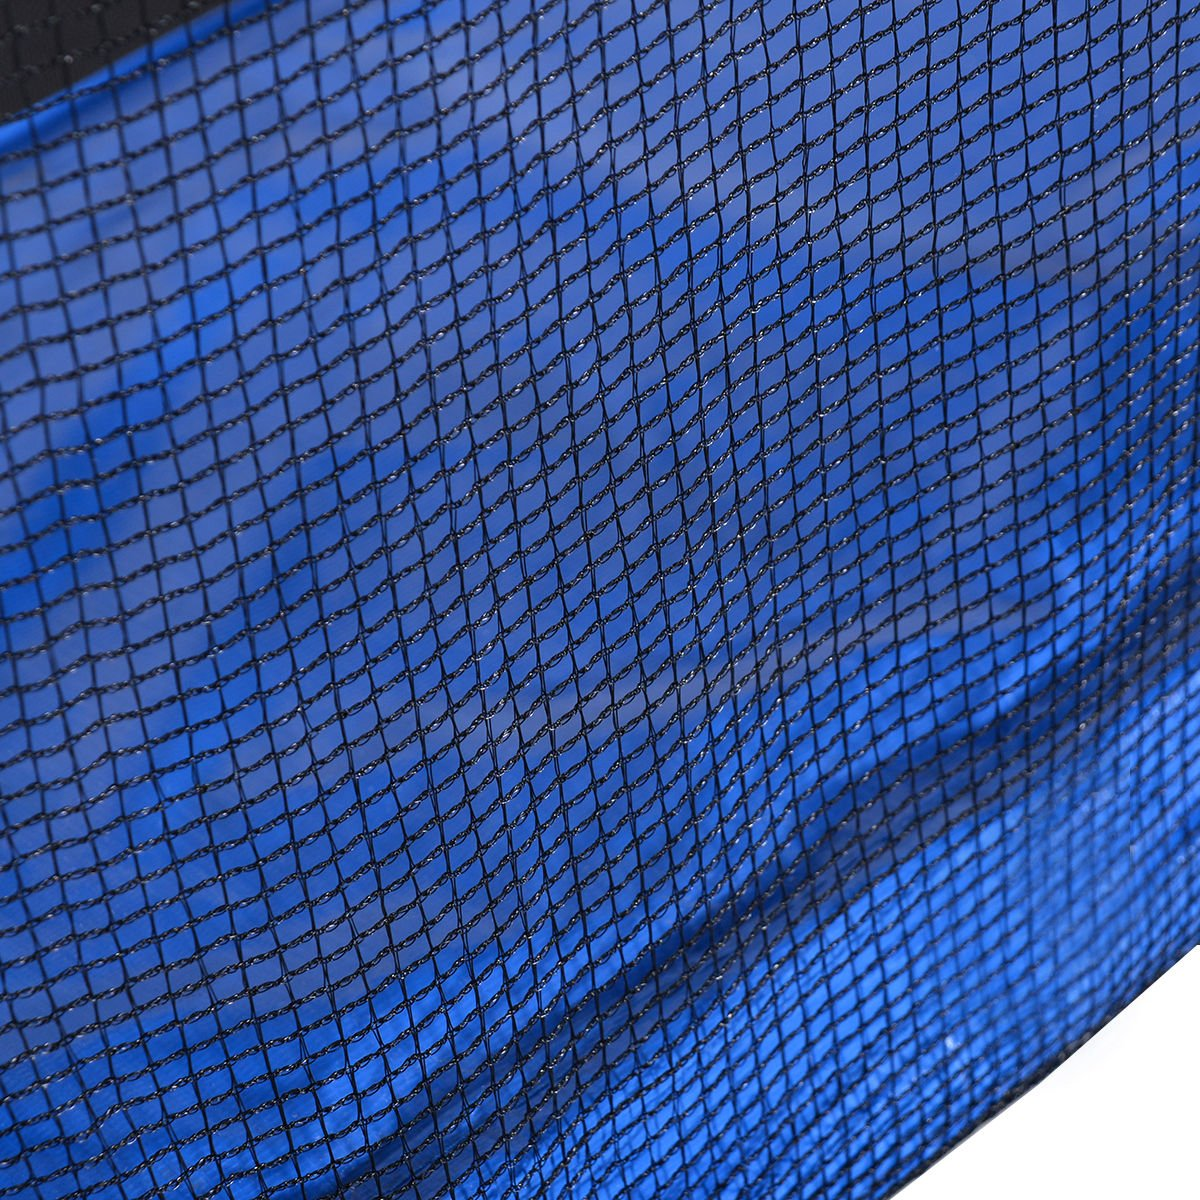 Giantex Trampoline Combo Bounce Jump Safety Enclosure Net W/Spring Pad Ladder (8 FT) by Giantex (Image #7)